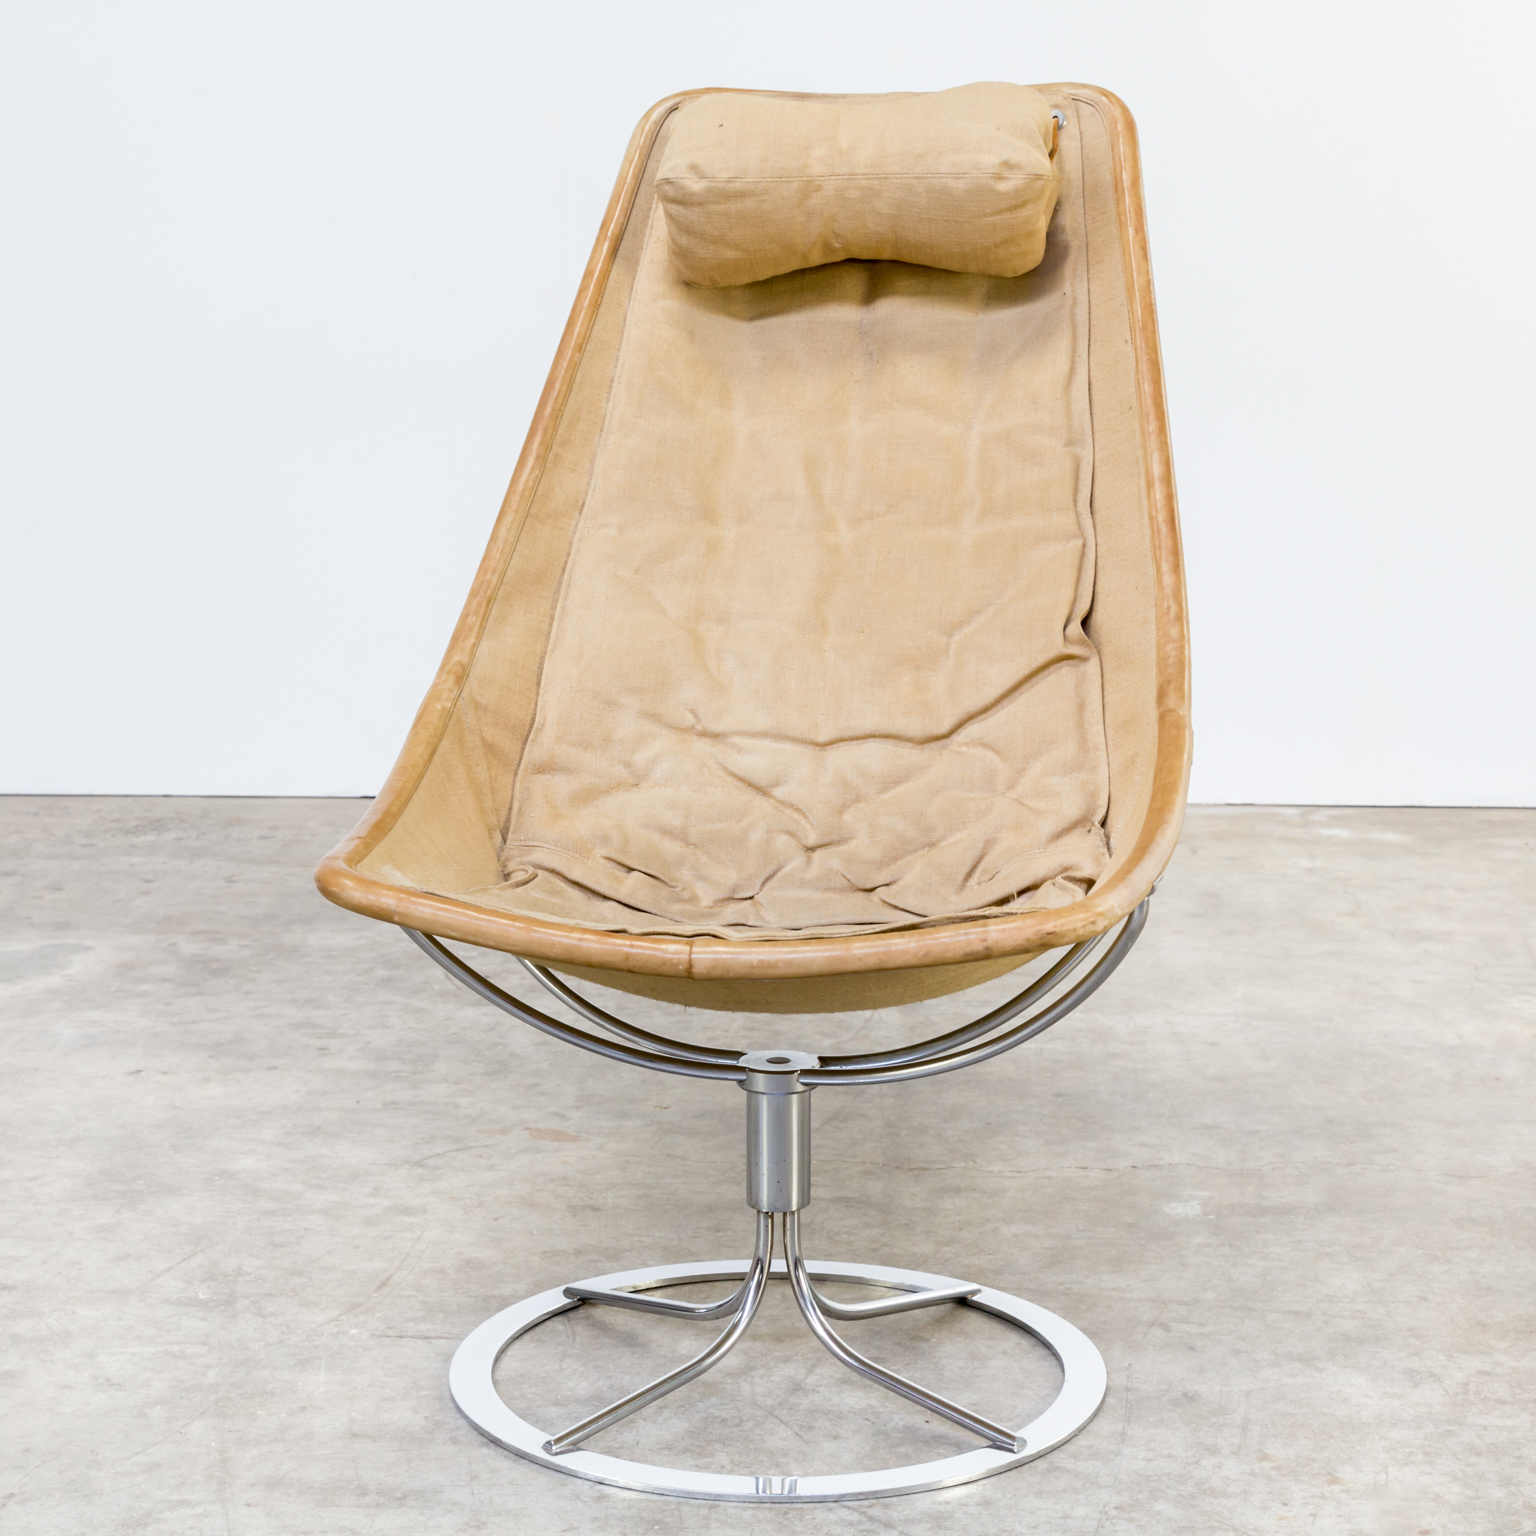 60s bruno mathsson jetson chair canvas for dux barbmama for Designer chairs from the 60s